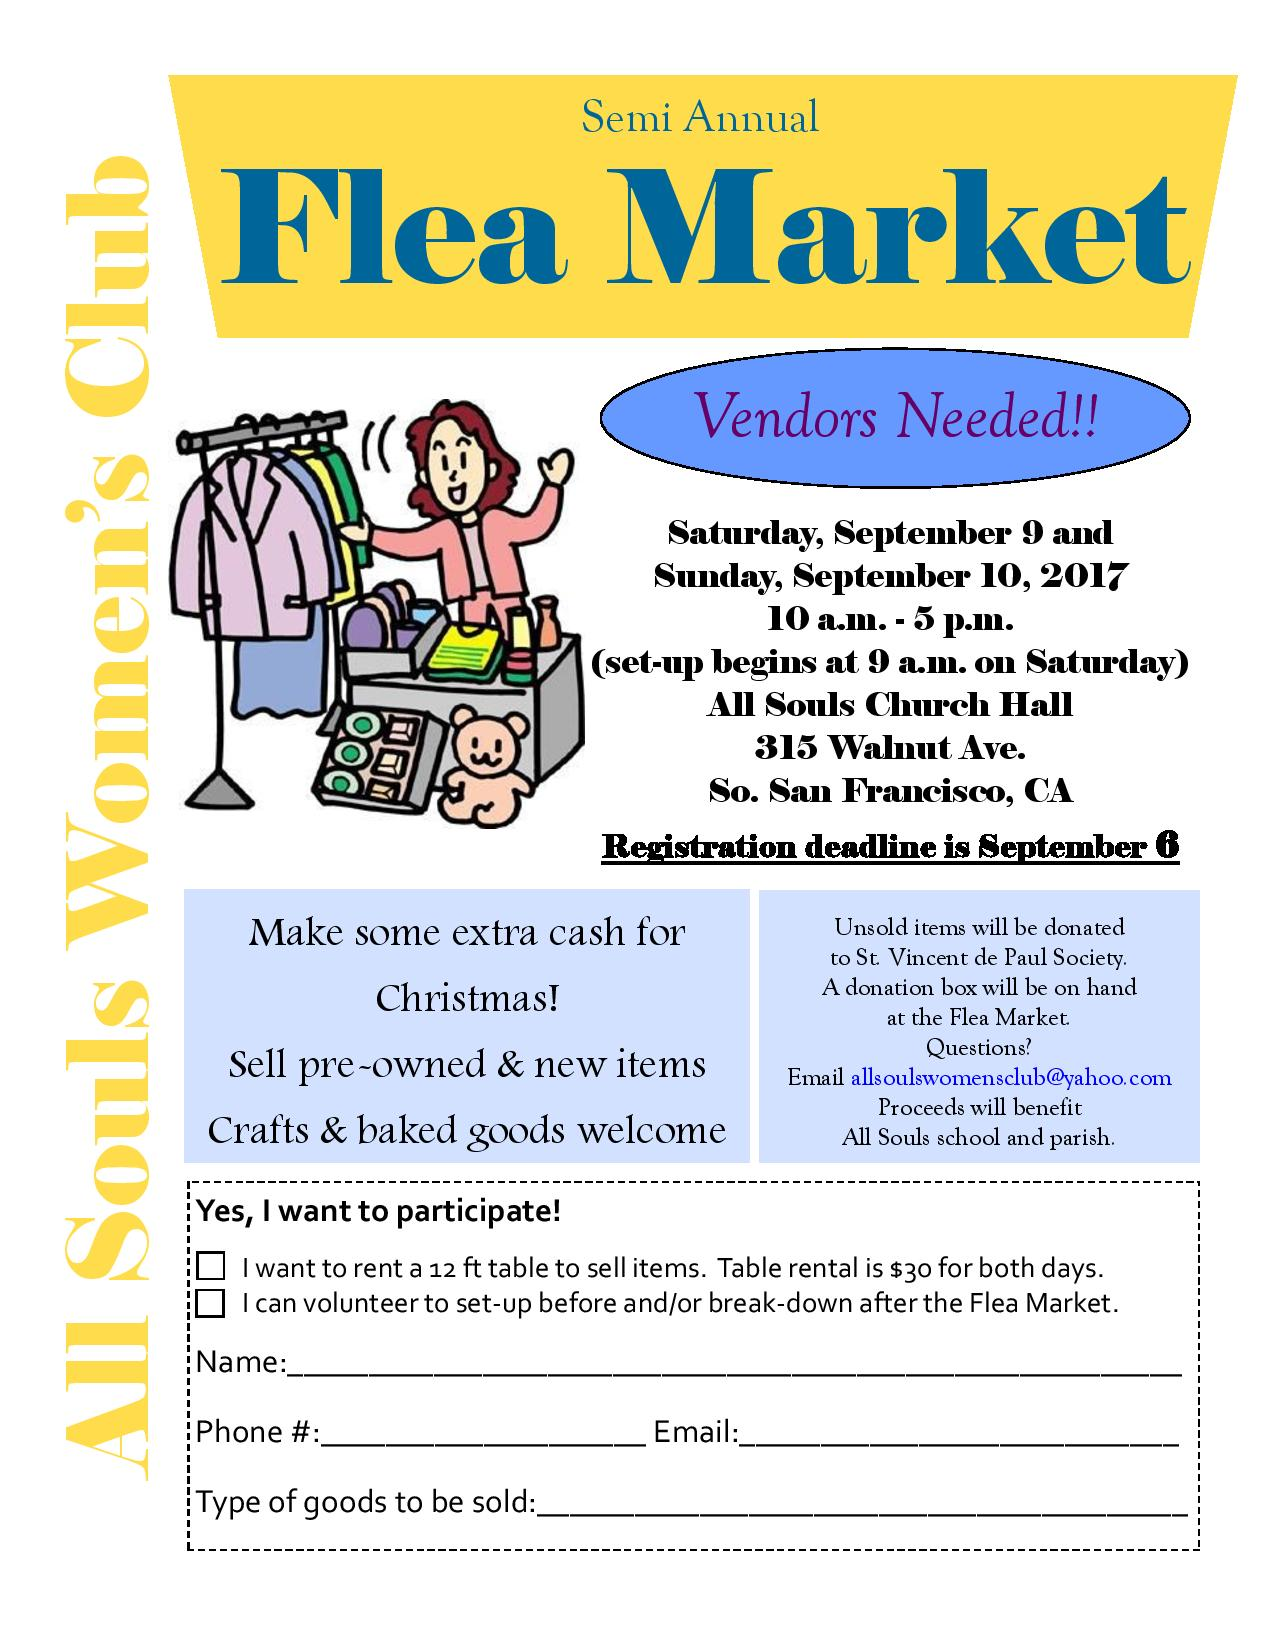 SEEKING VENDORS -All Souls Parish – Semi Annual Flea Market – Saturday, September 9 and Sunday, September 10, 2017